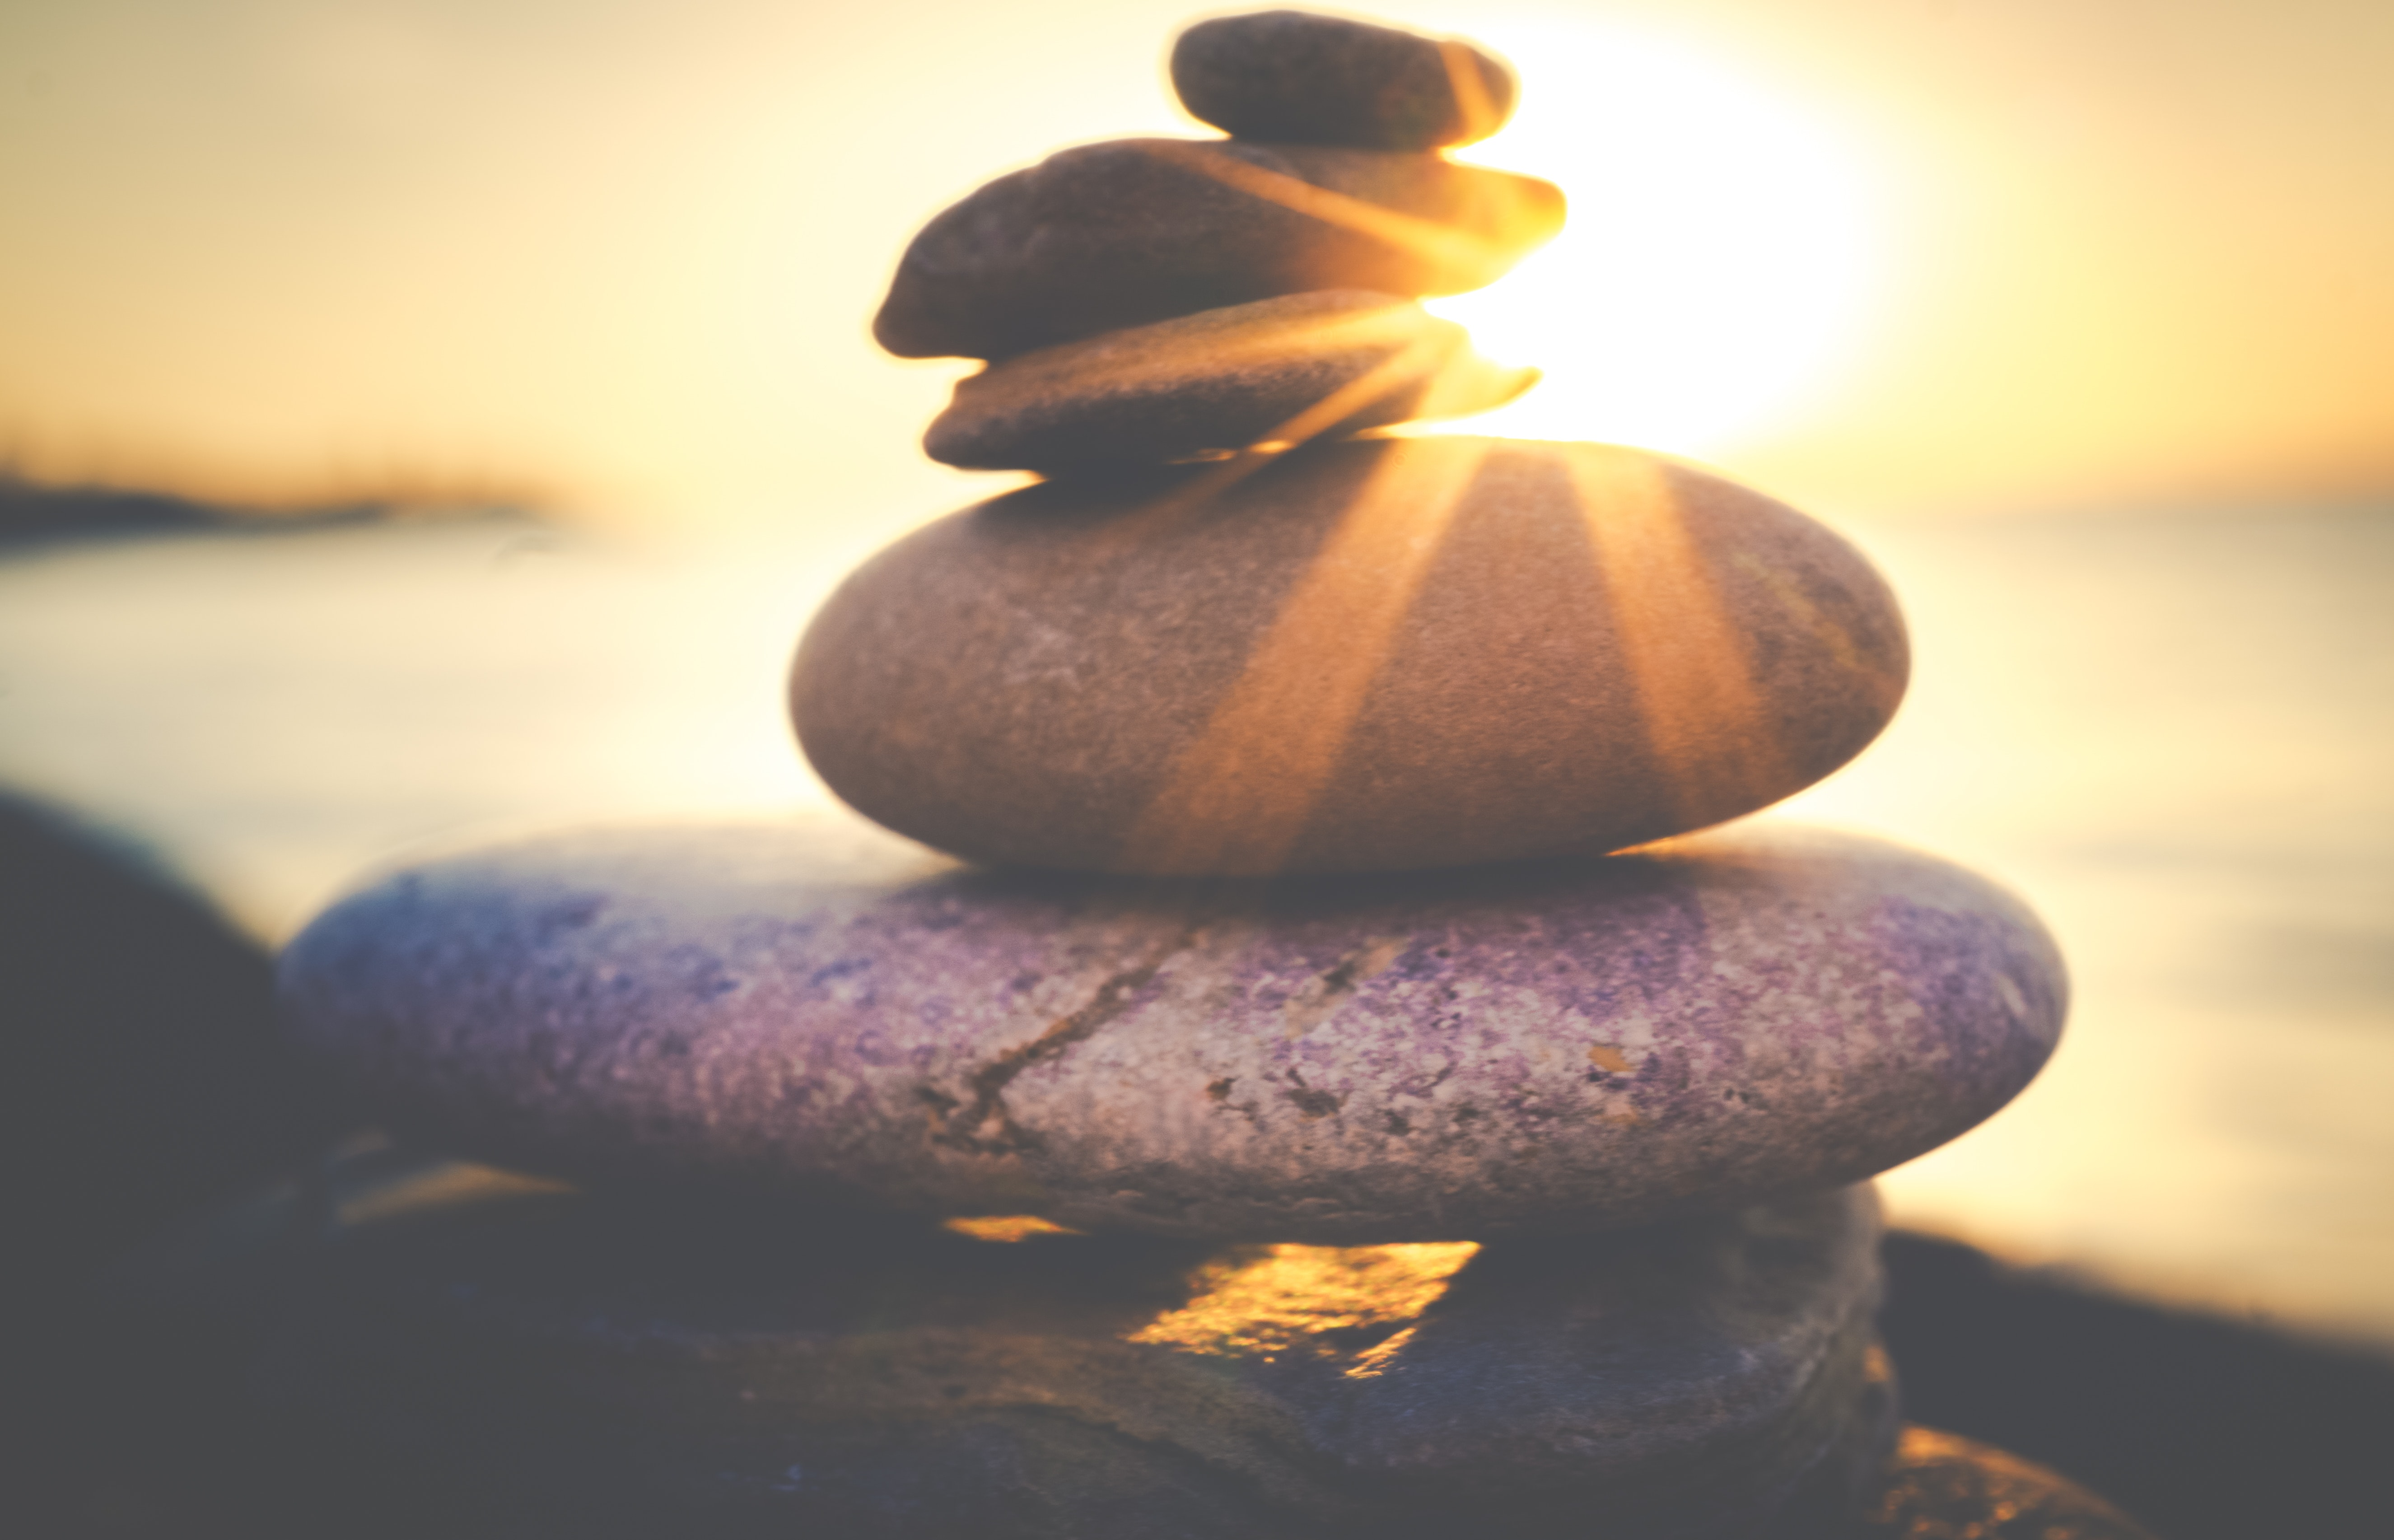 Image of stones balancing atop the other, outside on a beach. This image represents the balance I found between compulsive checking and avoidance.